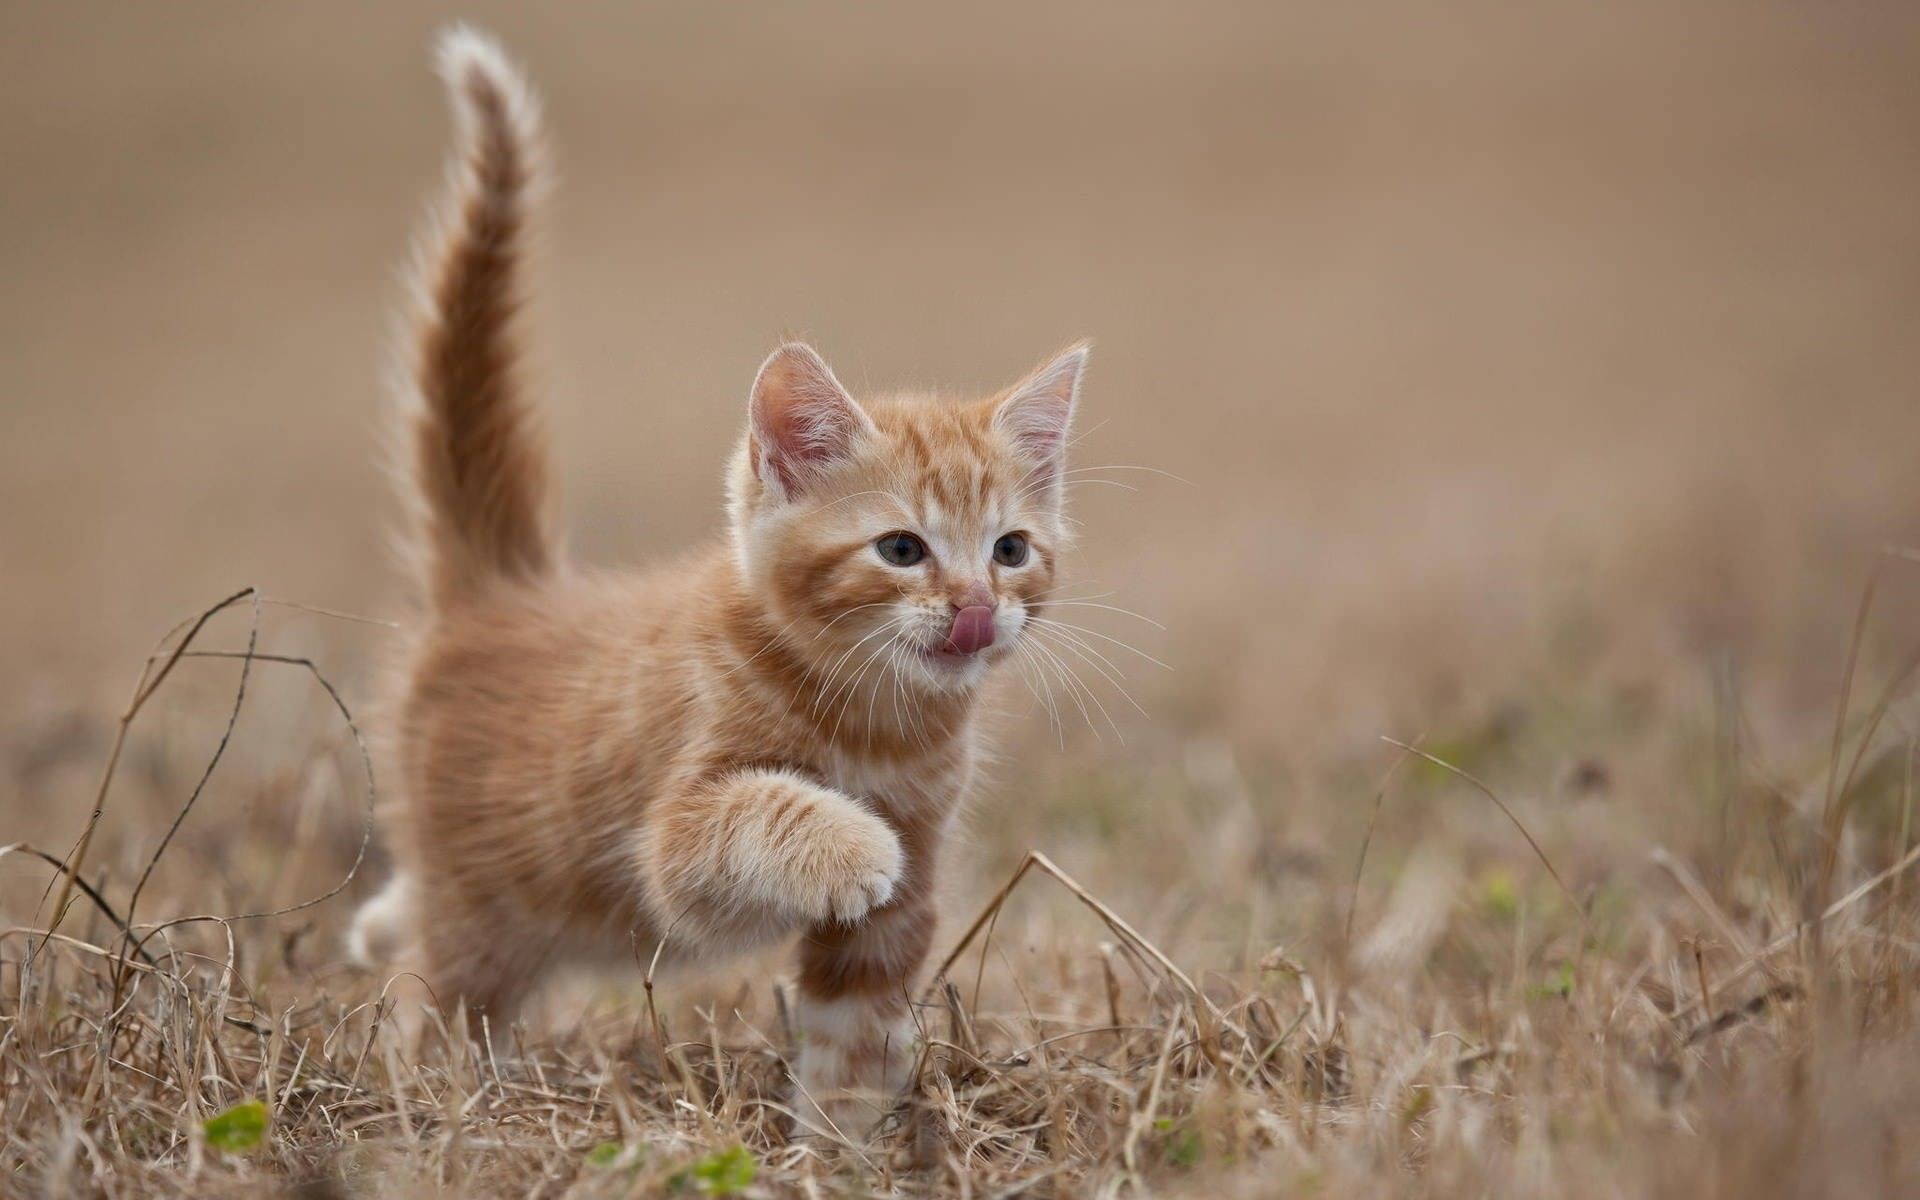 Cute kitten desktop wallpaper 60 images - Kitten backgrounds ...